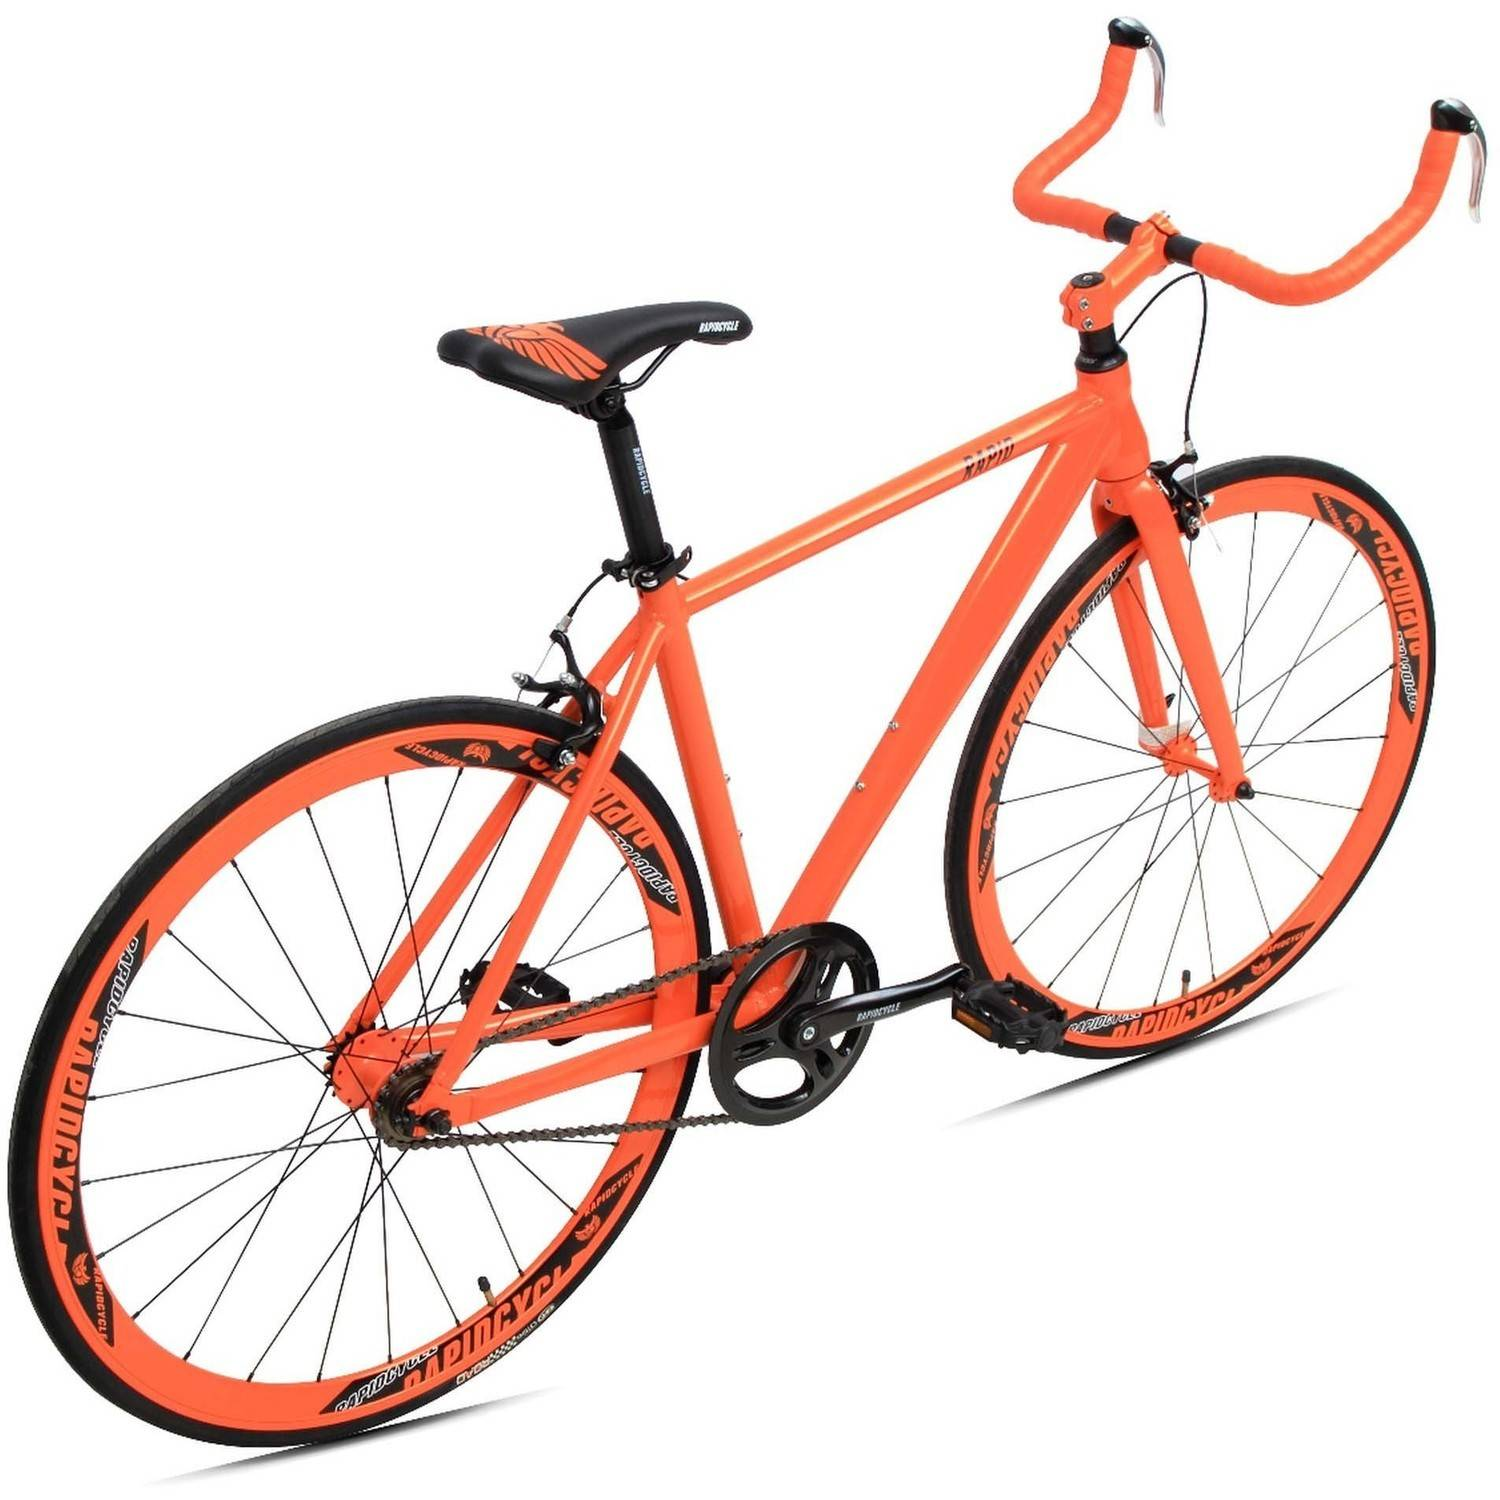 700C Evolve Bullhorn Aluminum Fixed Gear Bike